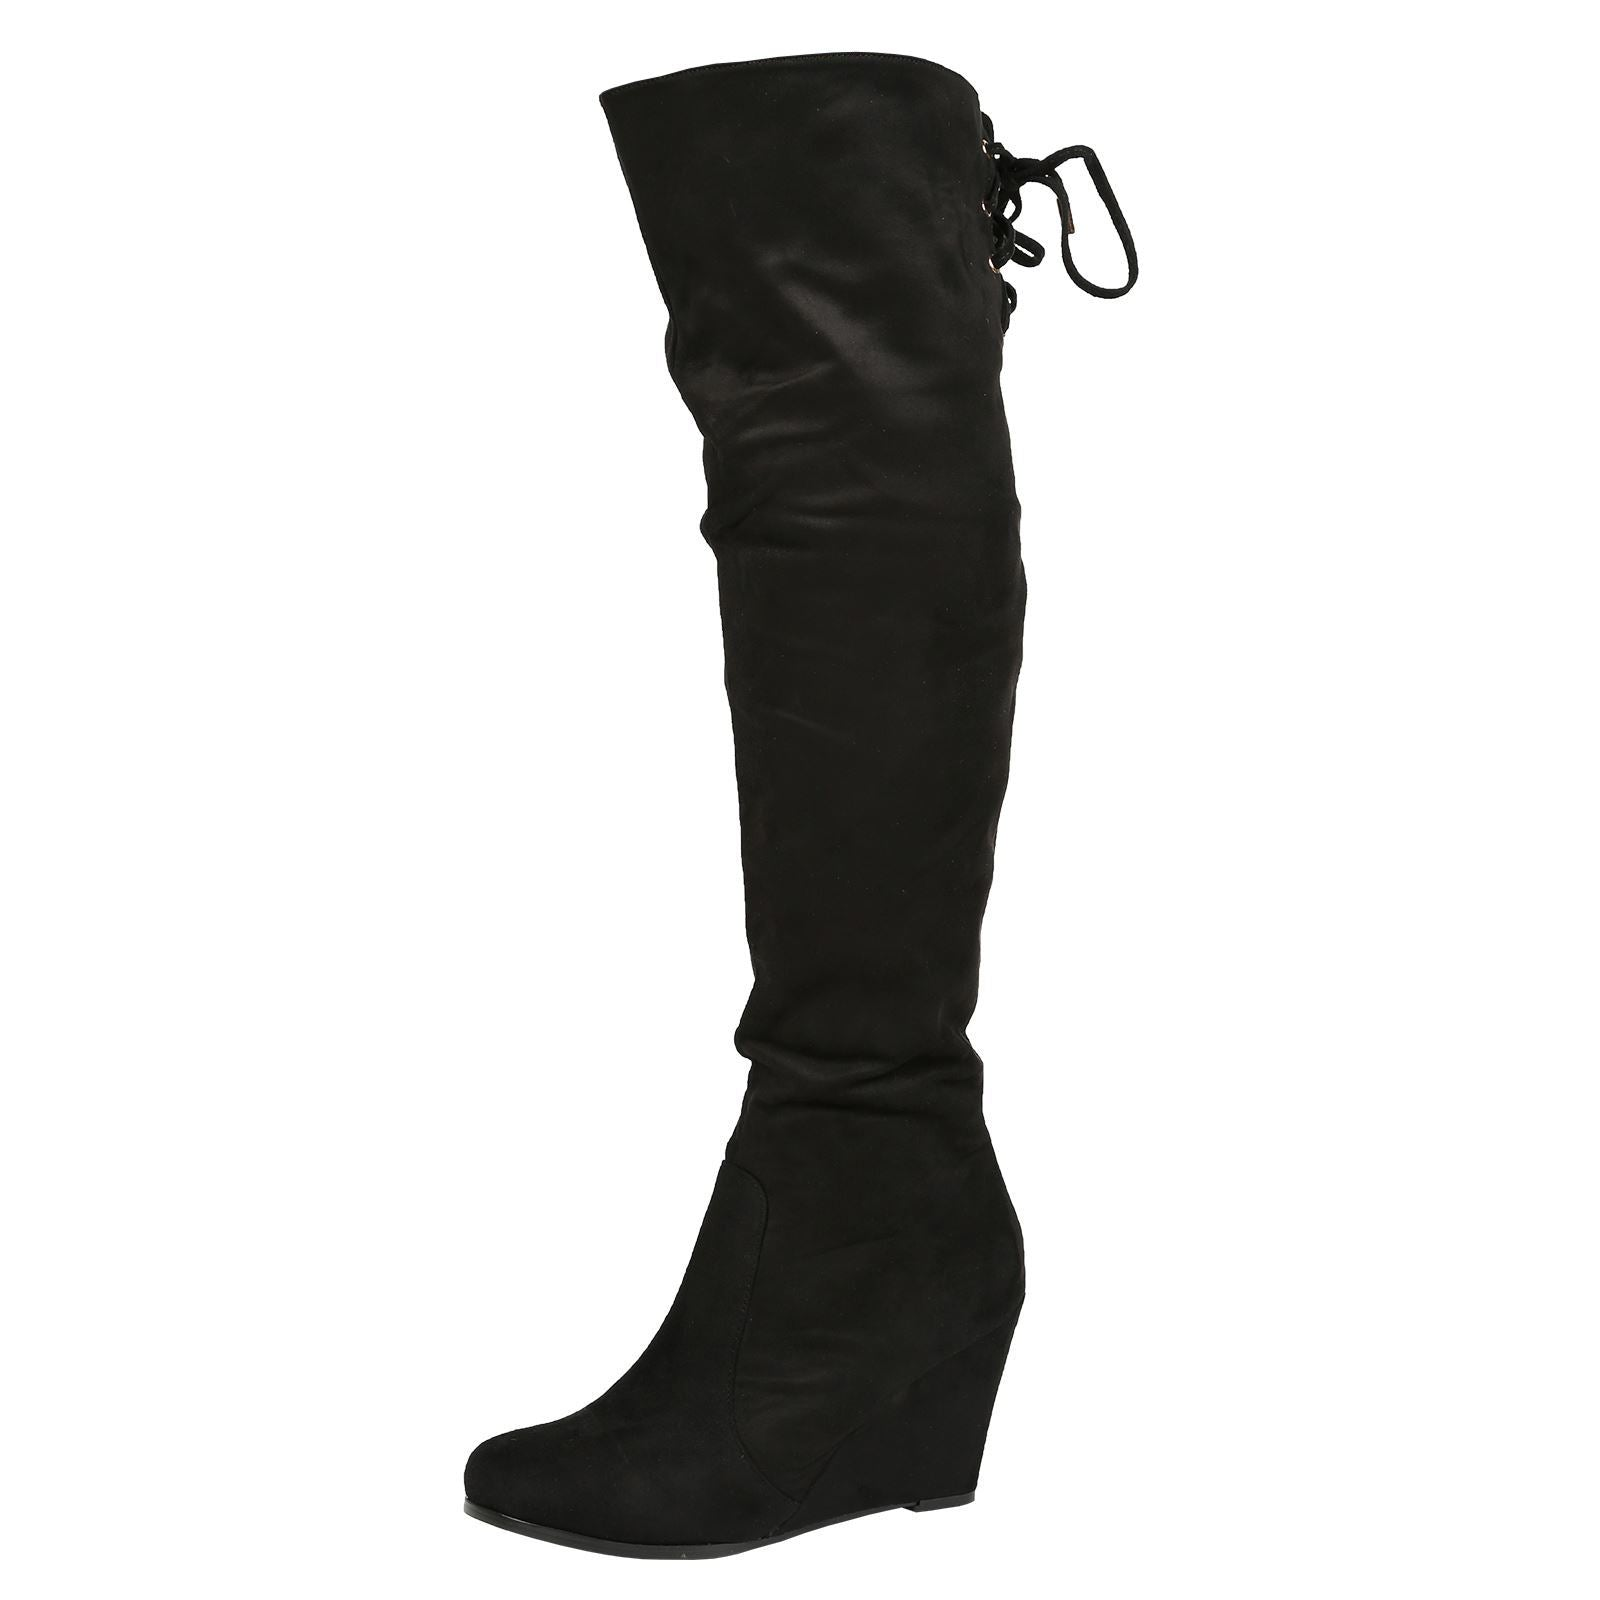 Billie Wedge Over the Knee Boots in Black Faux Suede